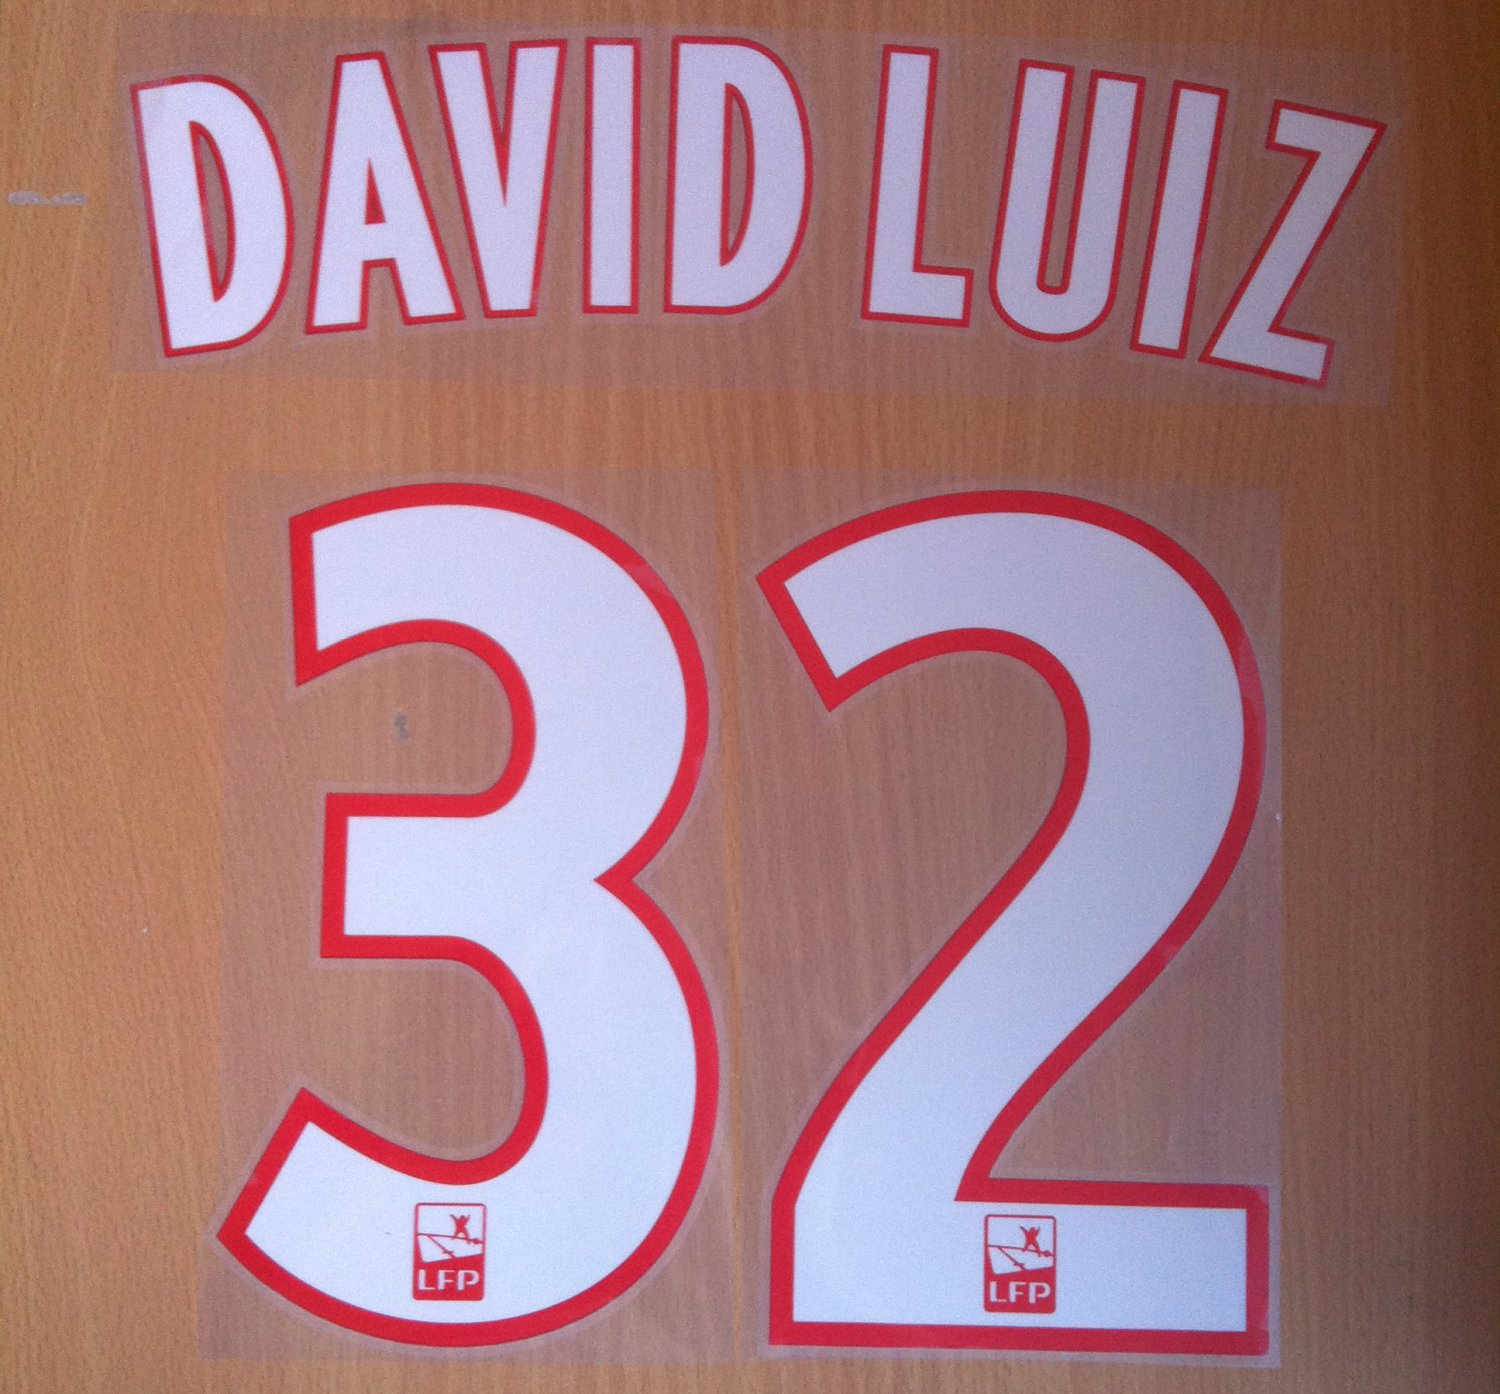 DAVID LUIZ 32 PARIS SAINT GERMAIN PSG HOME 2014 2015 NAME NUMBER SET  NAMESET KIT PRINT FOOTBALL 6d5f7a9db